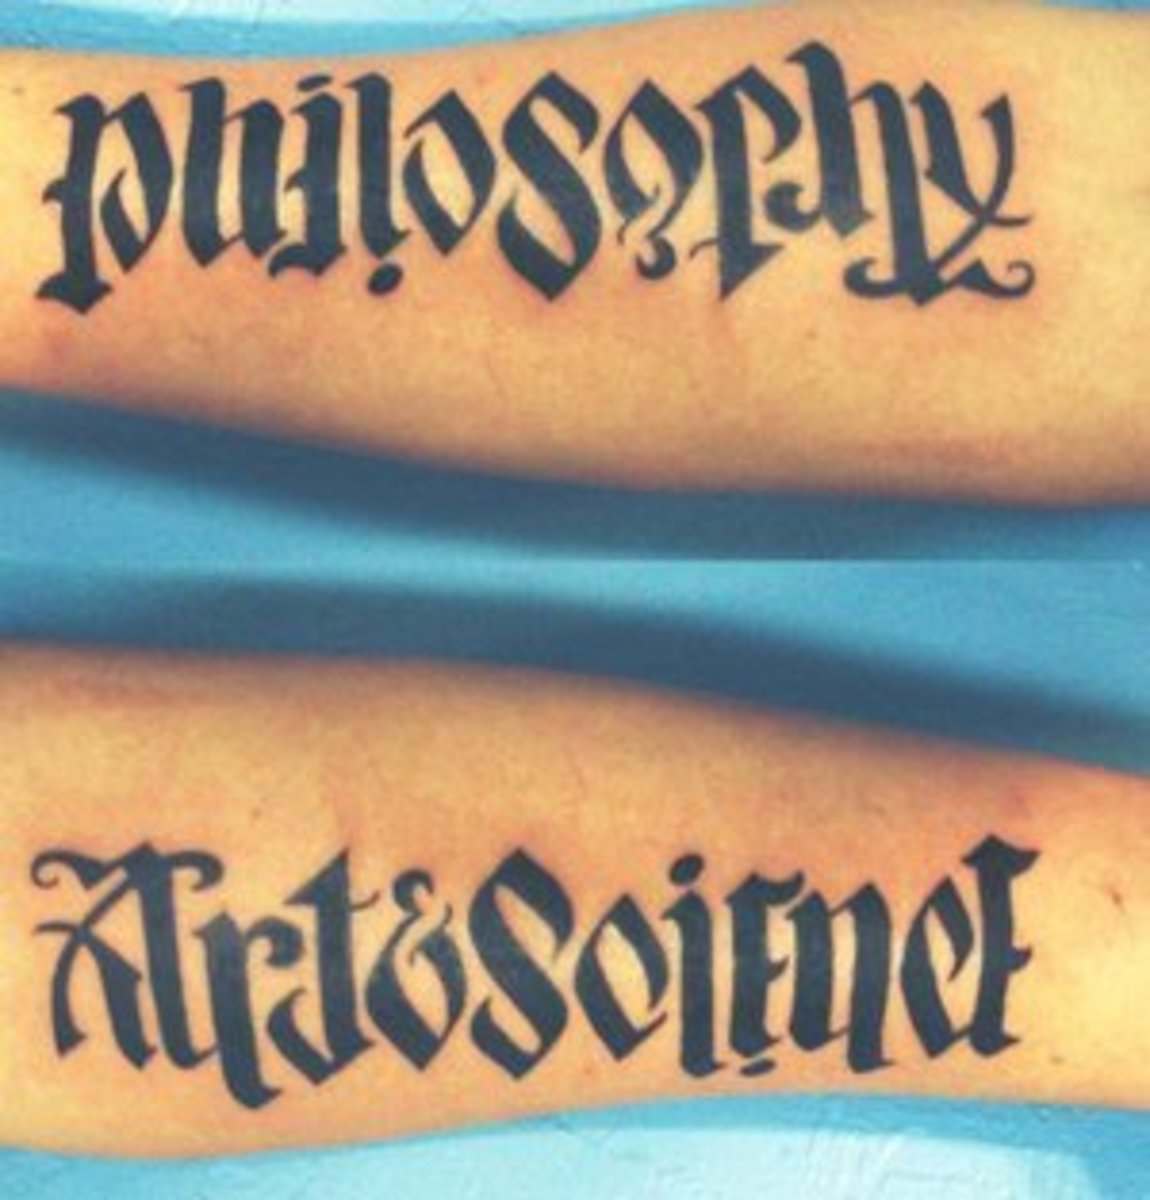 Text tattoo ideas tatring for Tattoos that say something different upside down